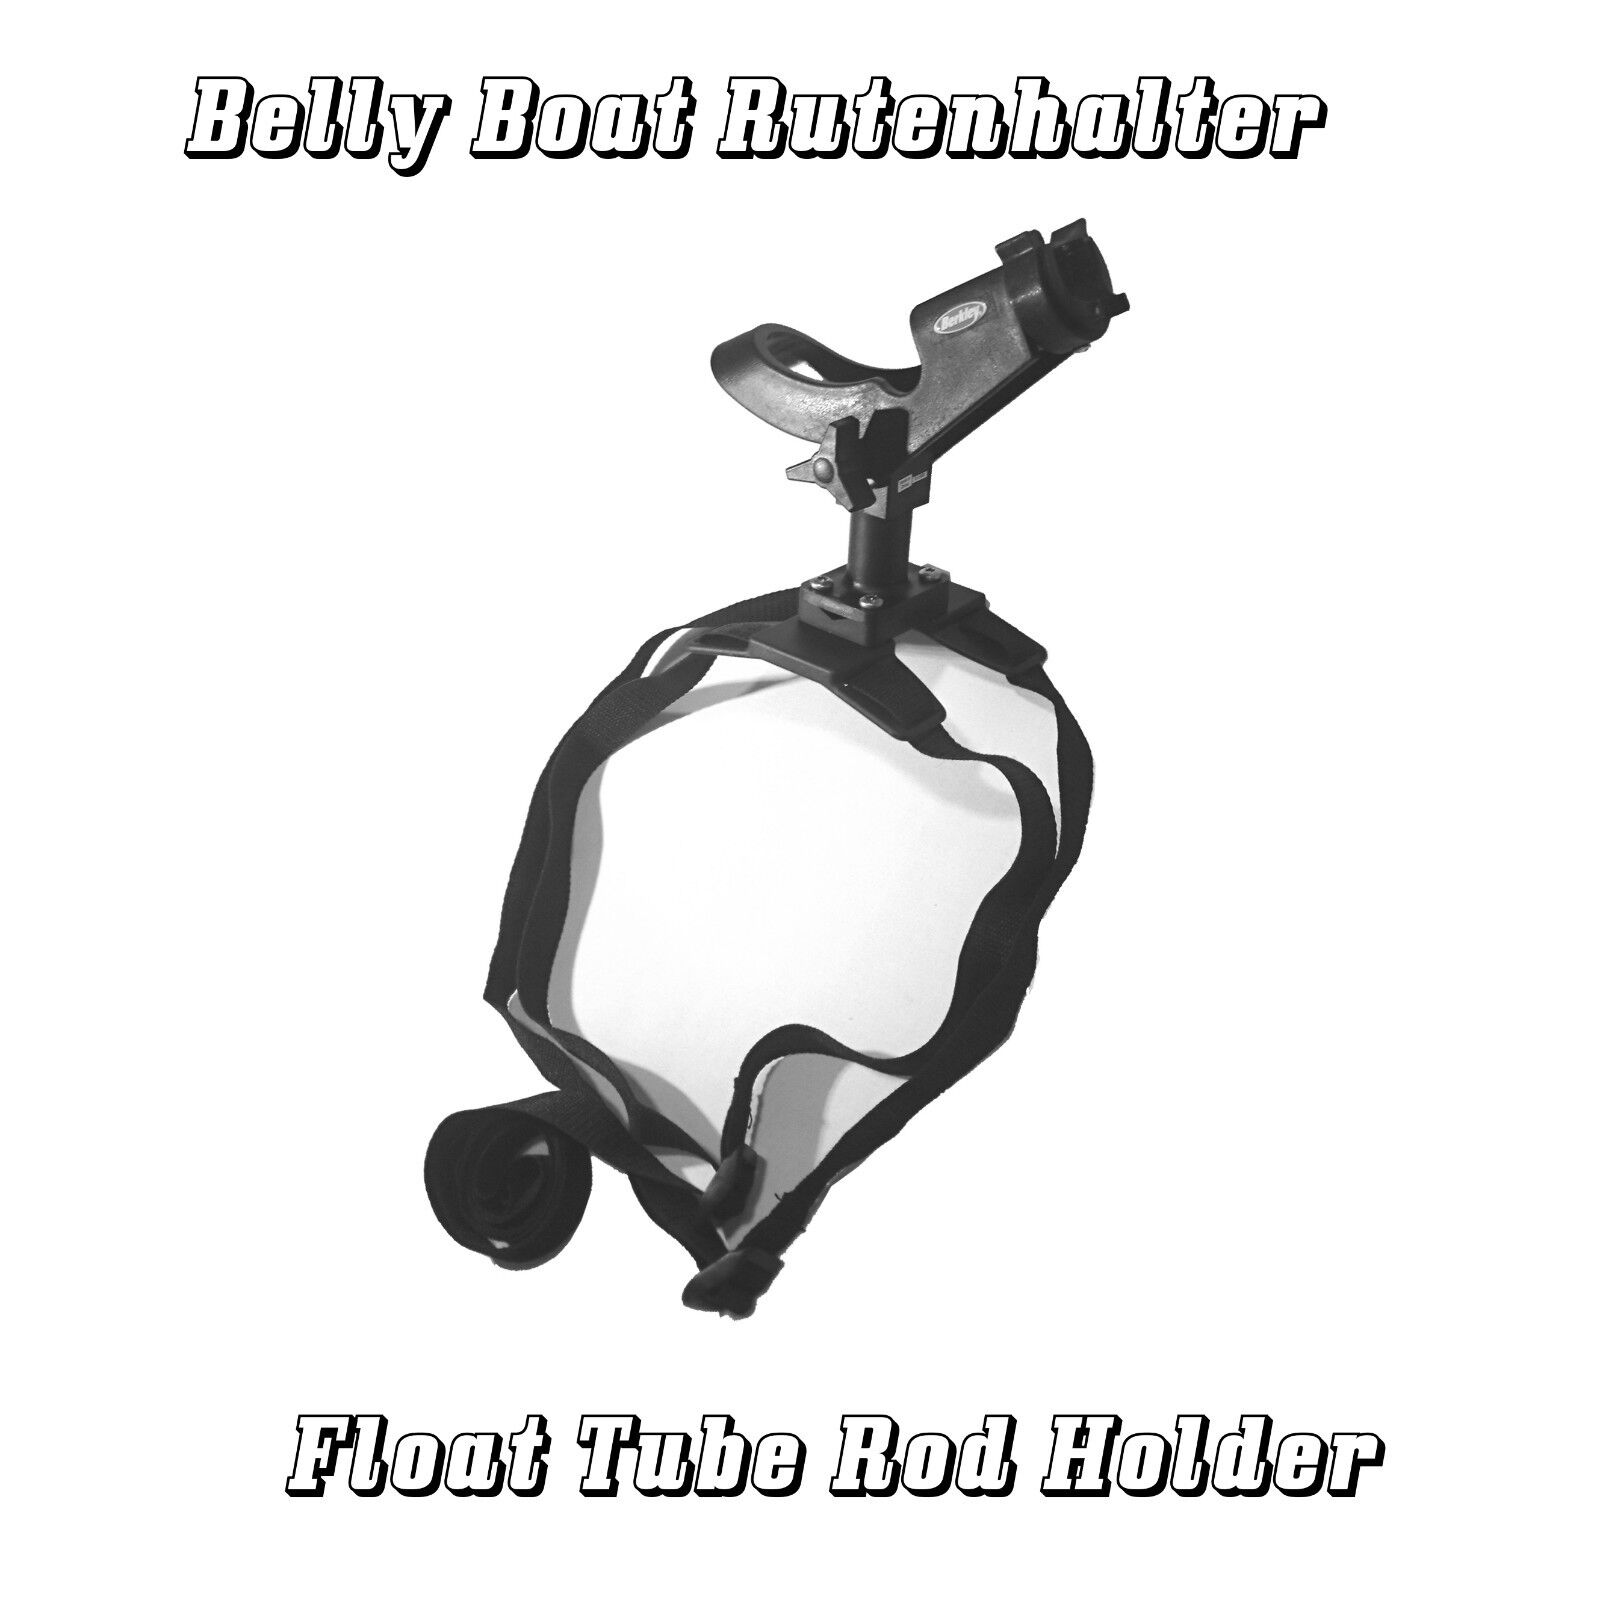 Deluxe Belly Stiefel Stiefel Stiefel Rutenhalter , Float Tube Rod Holder , Belly Boat Rod Holder f9d16c